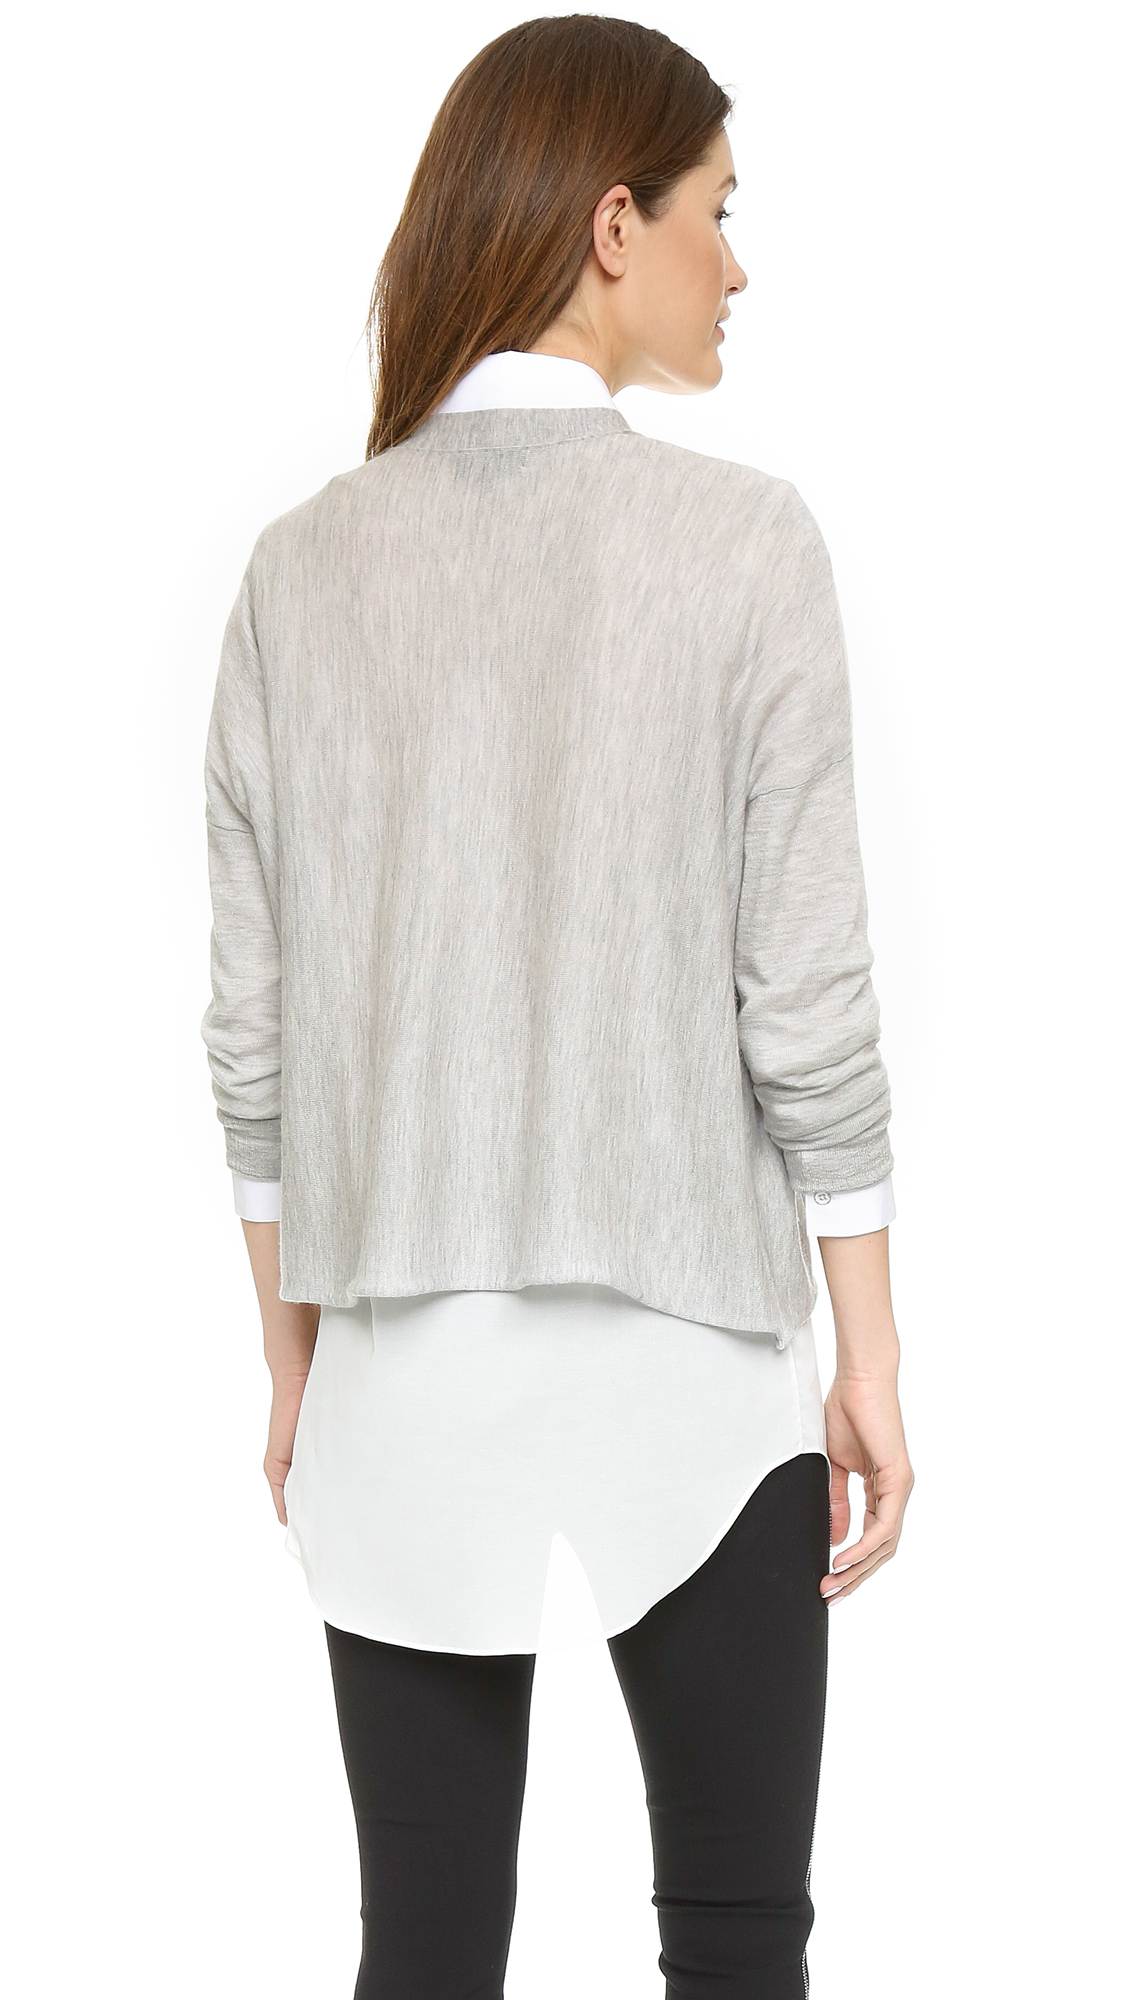 Rag & bone Serena Cashmere Cardigan - Light Grey Melange in Gray ...